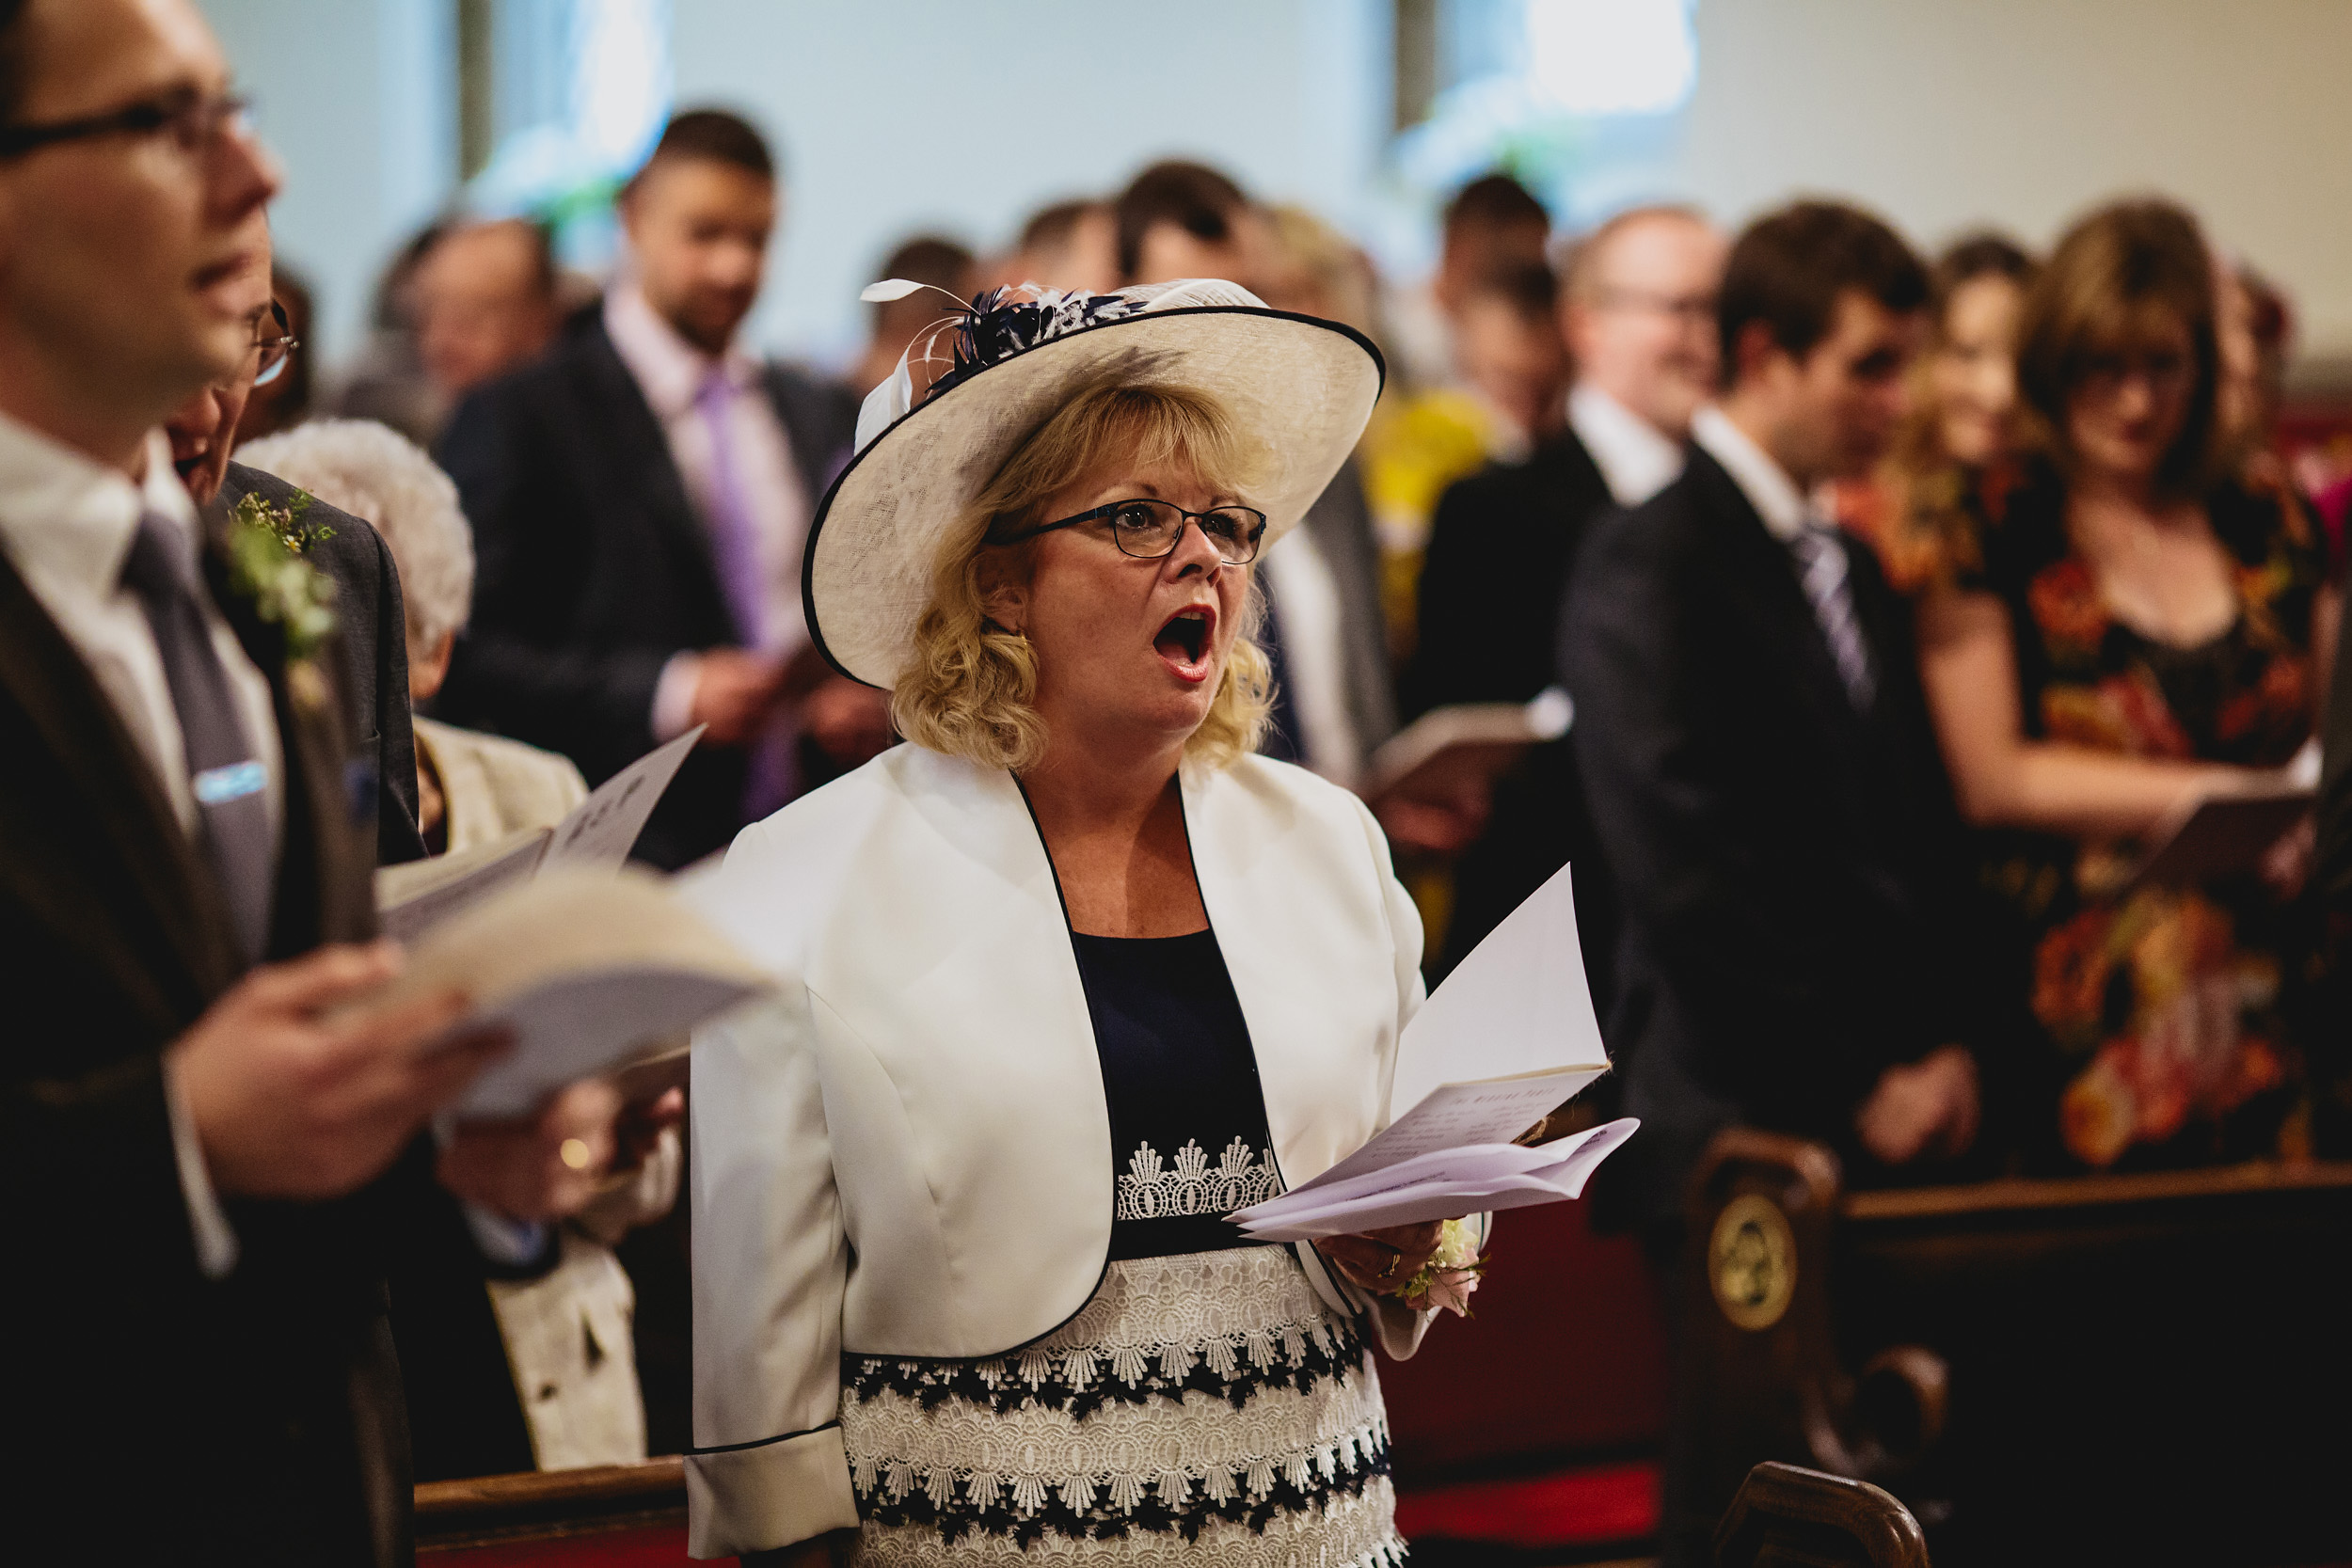 Brides mother singing hymns at the church ceremony wedding